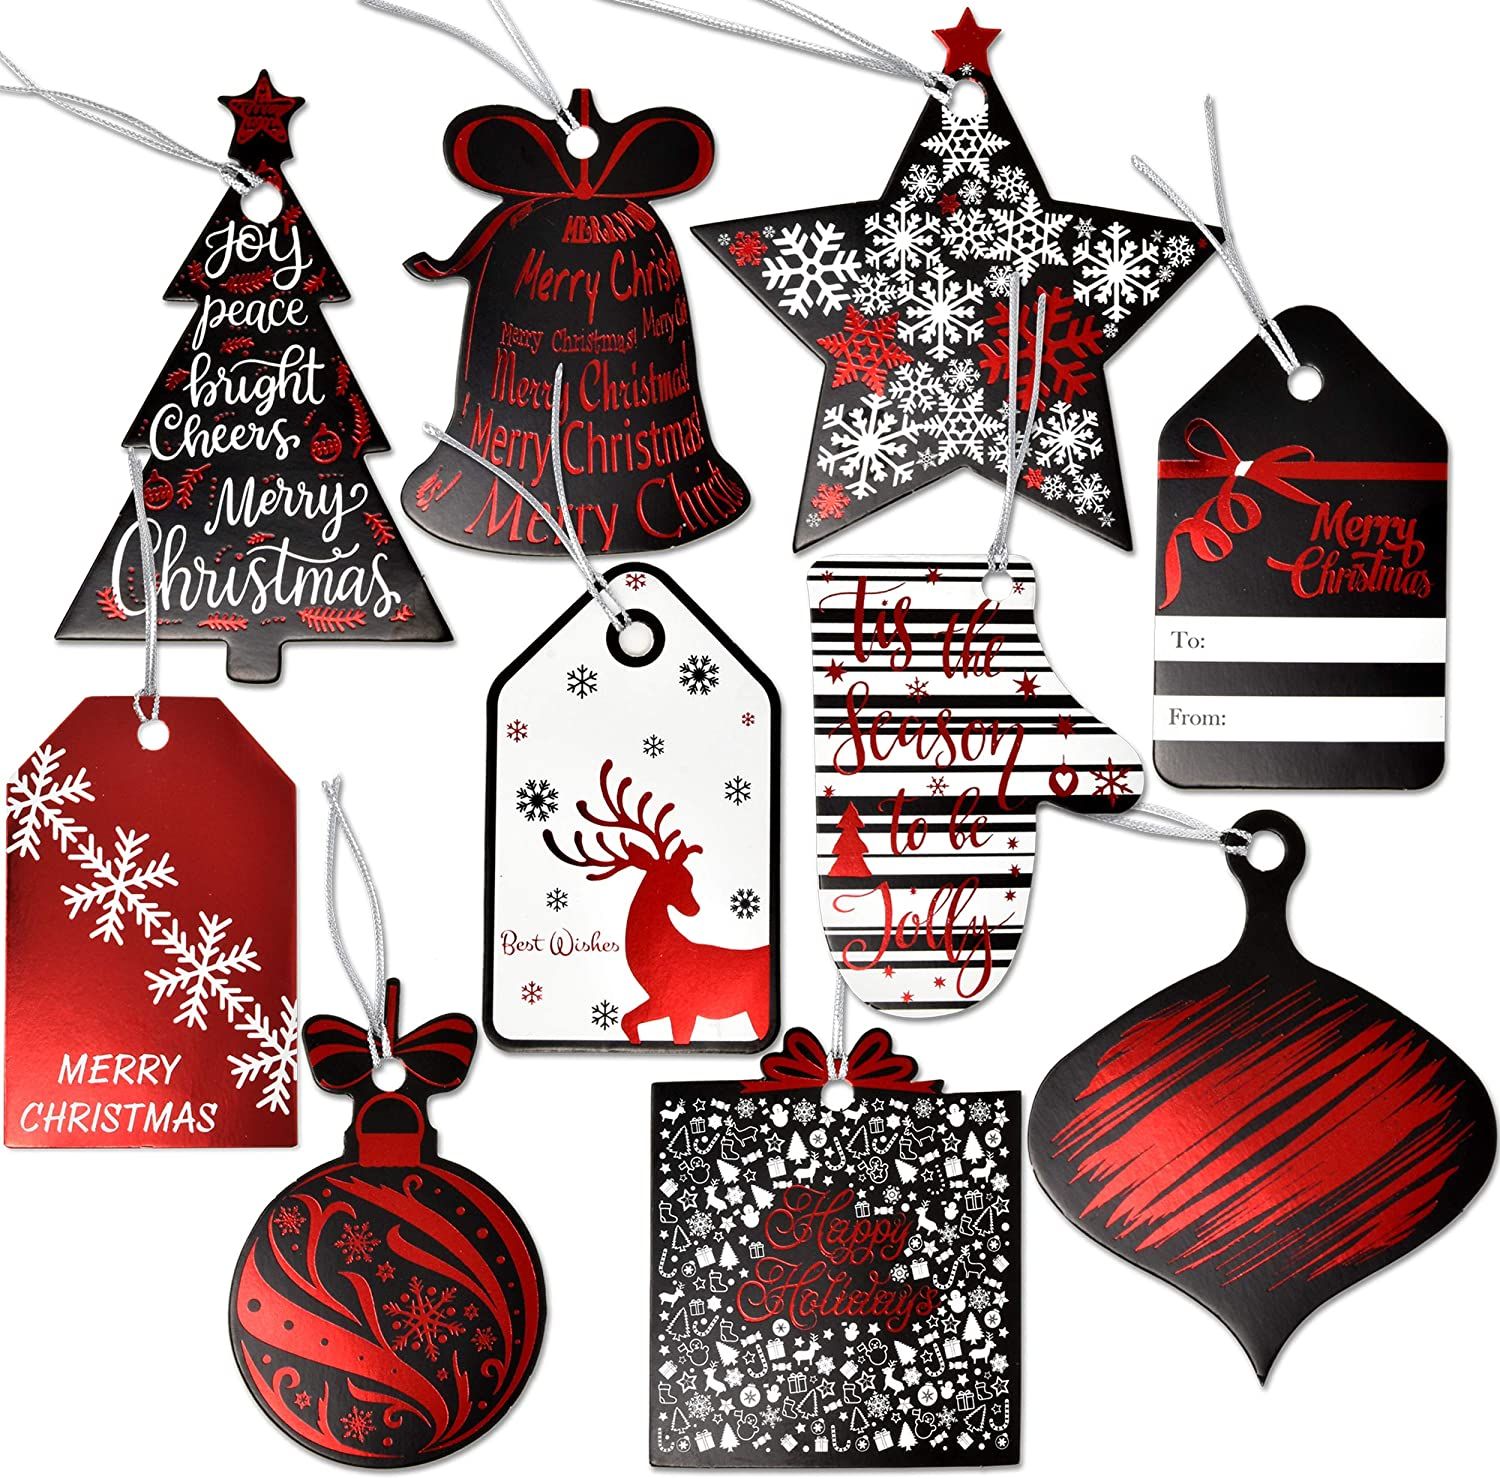 Christmas Gift Tags 40 Silver Foil Gift Tags With 5 Different Messages With Ties